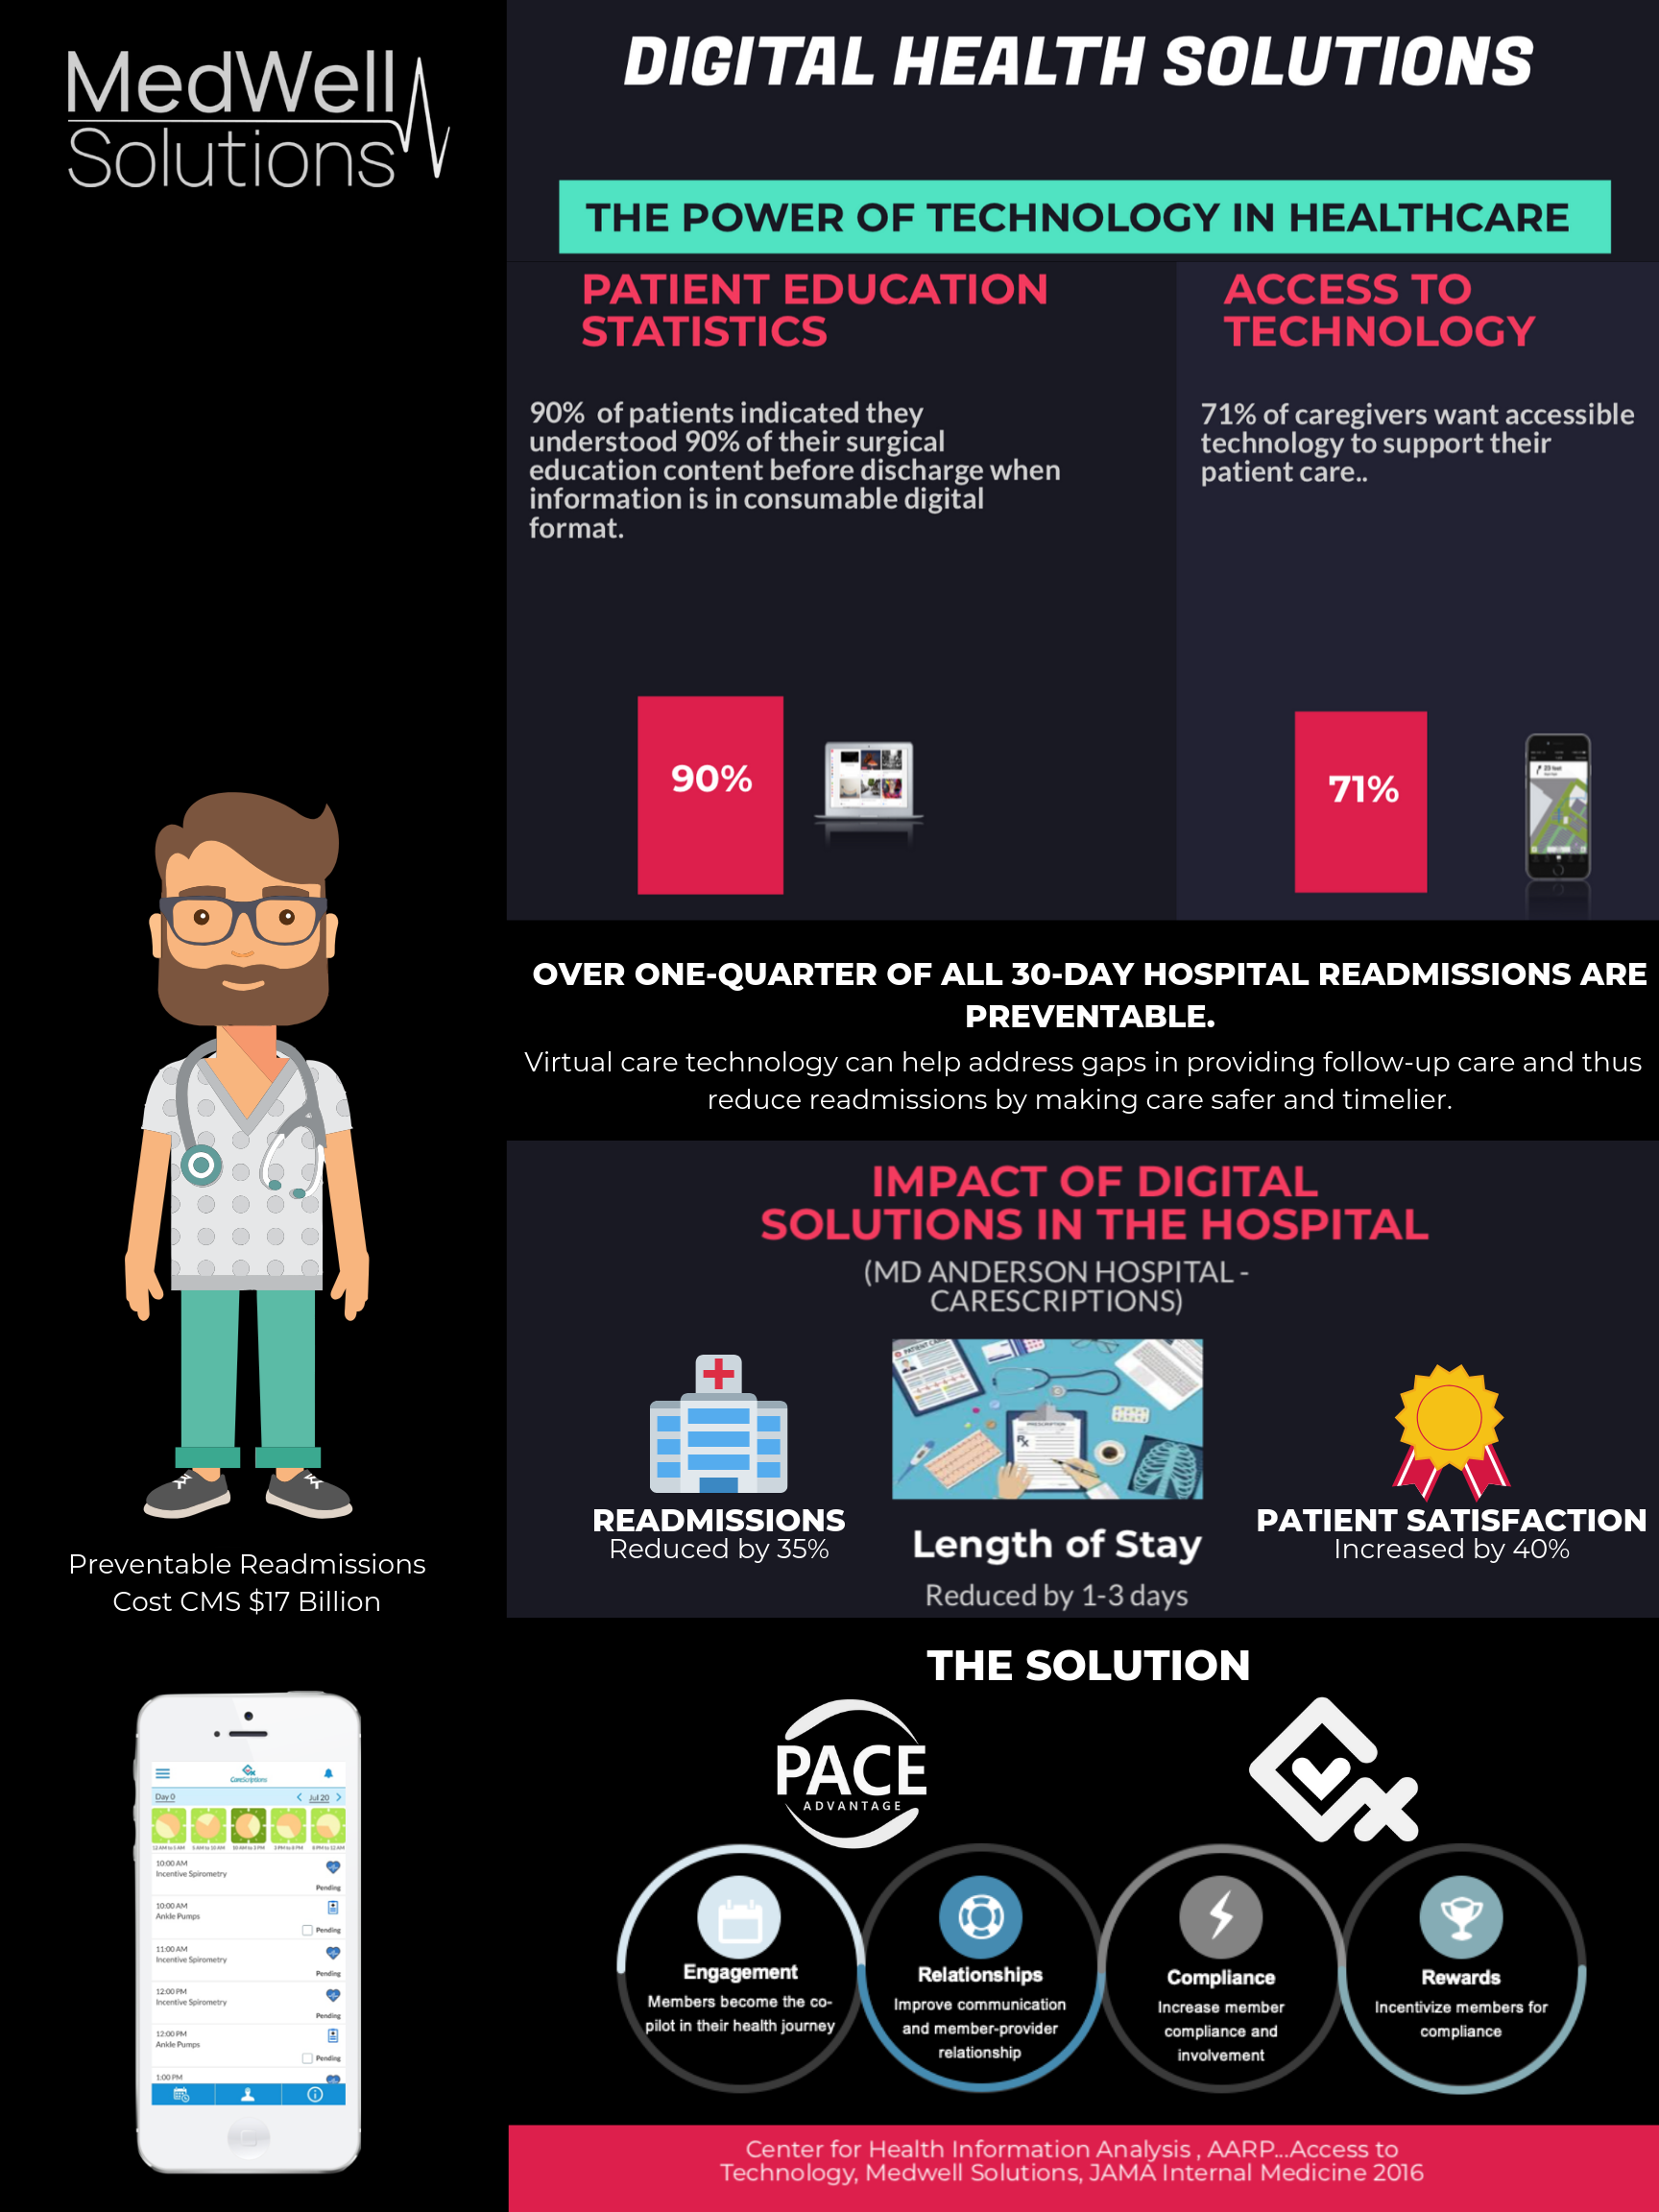 MWS Digital Health Solution Infographic